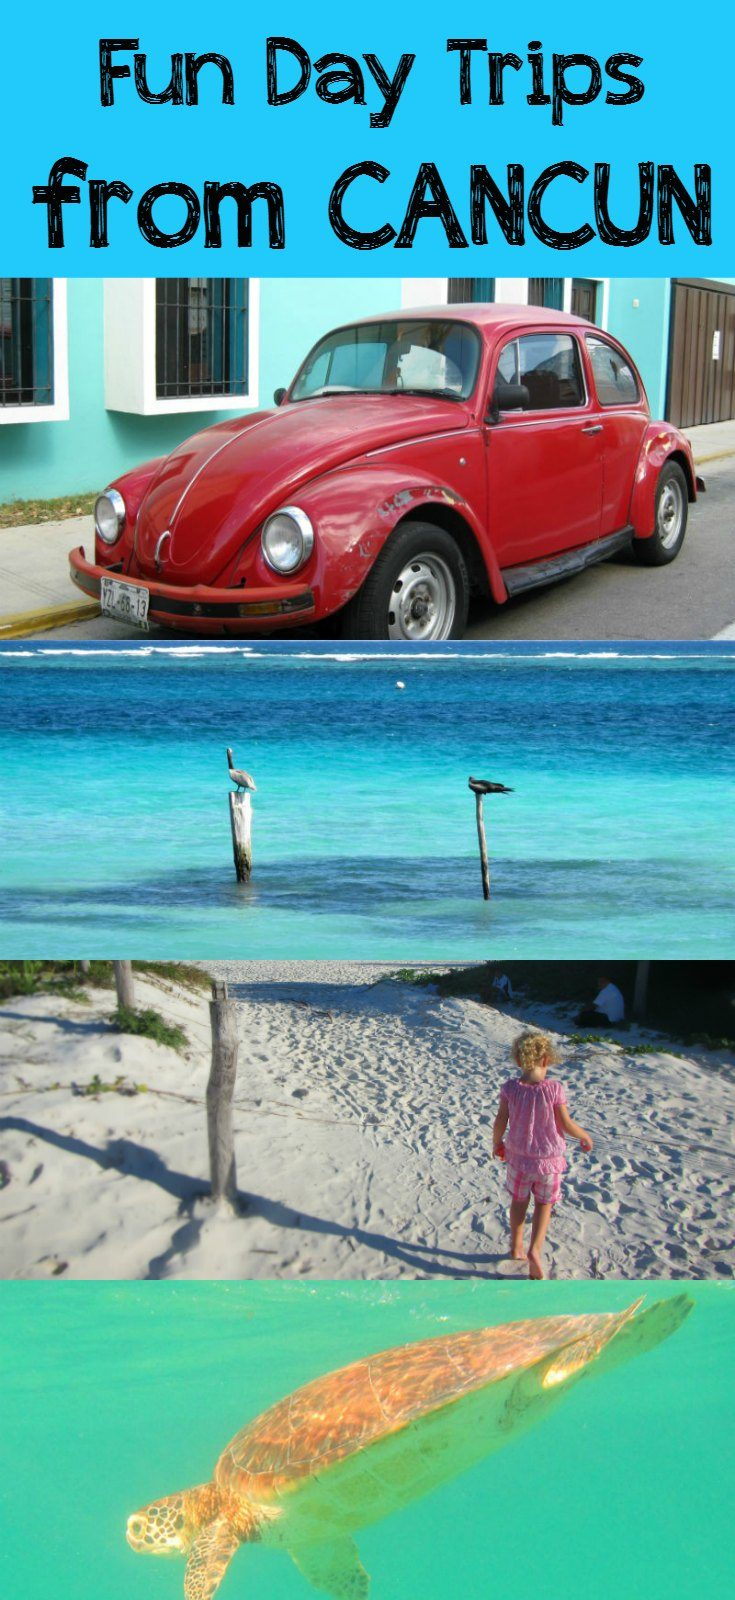 Alternative Cancun Day Trips You Shouldnt Miss - 10 amazing day trips to take in cancun